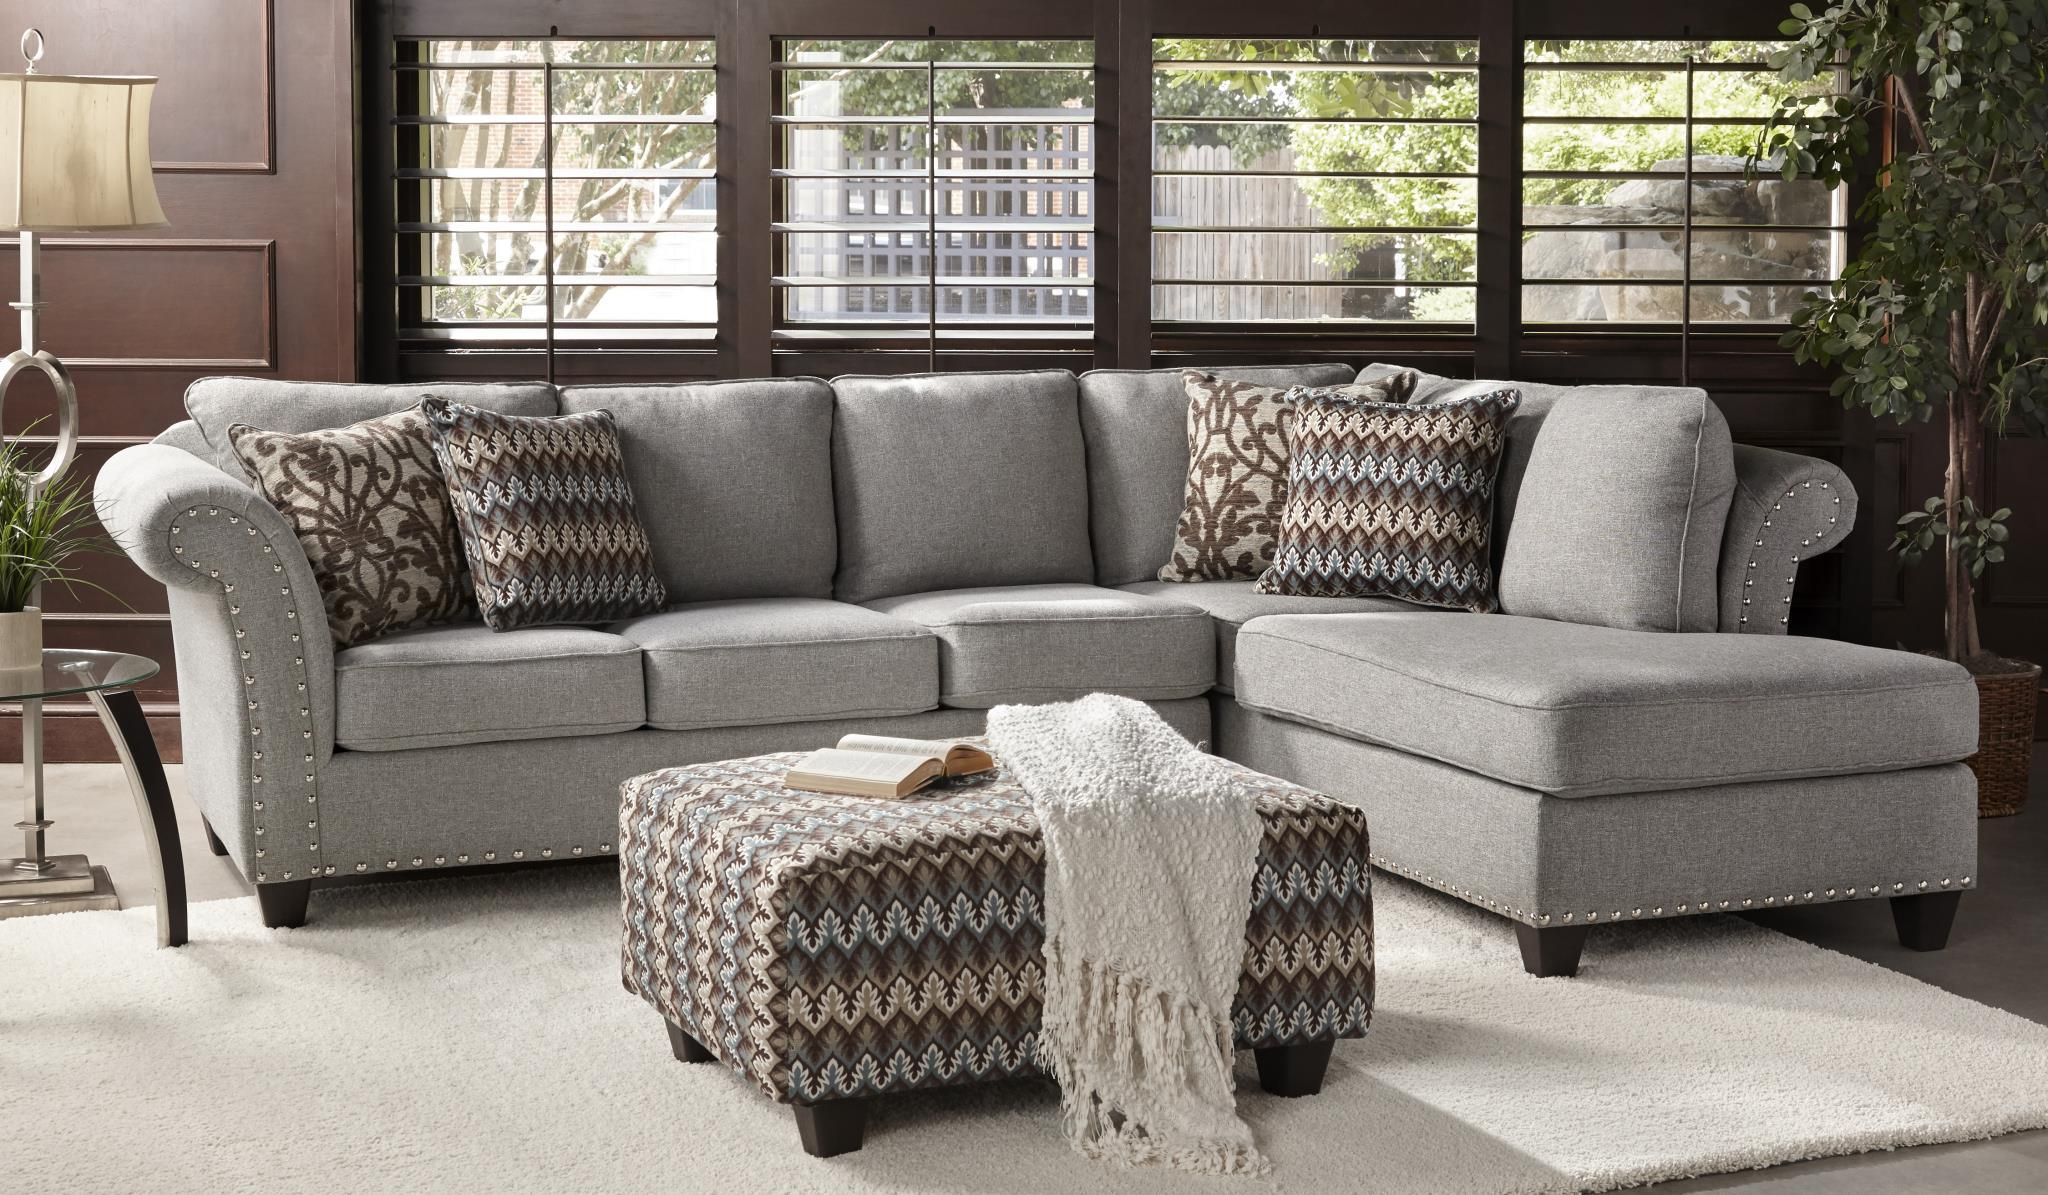 2350 2 Piece Sectional Sofa with Chaise  With Silver Nailhead Accents and Toss Pillows Included $998.99